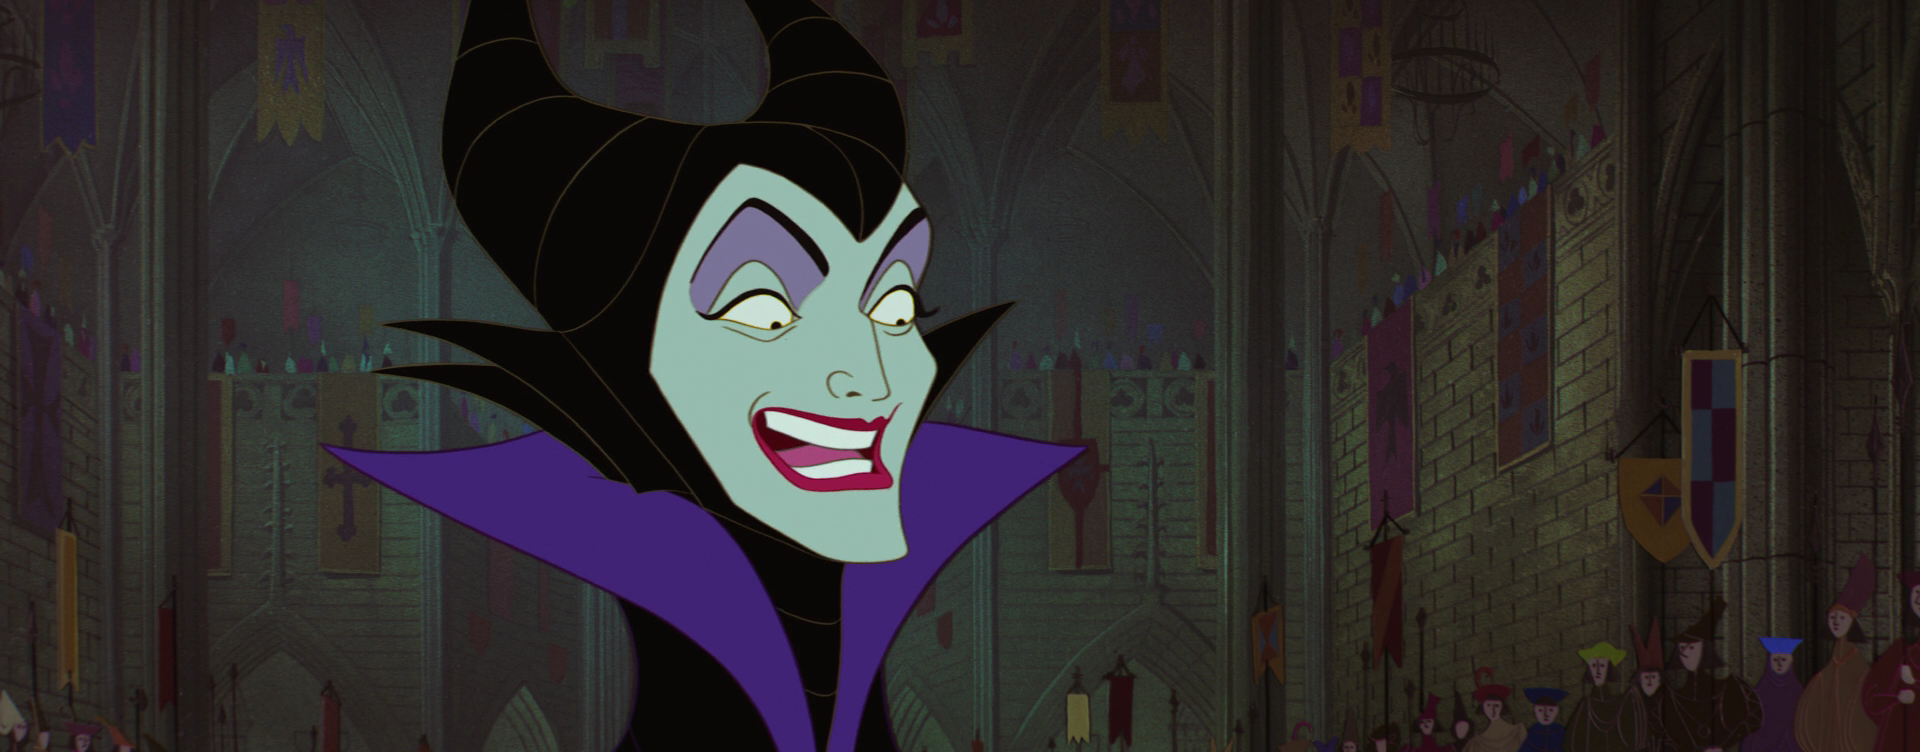 paul�s review of �maleficent� 2014